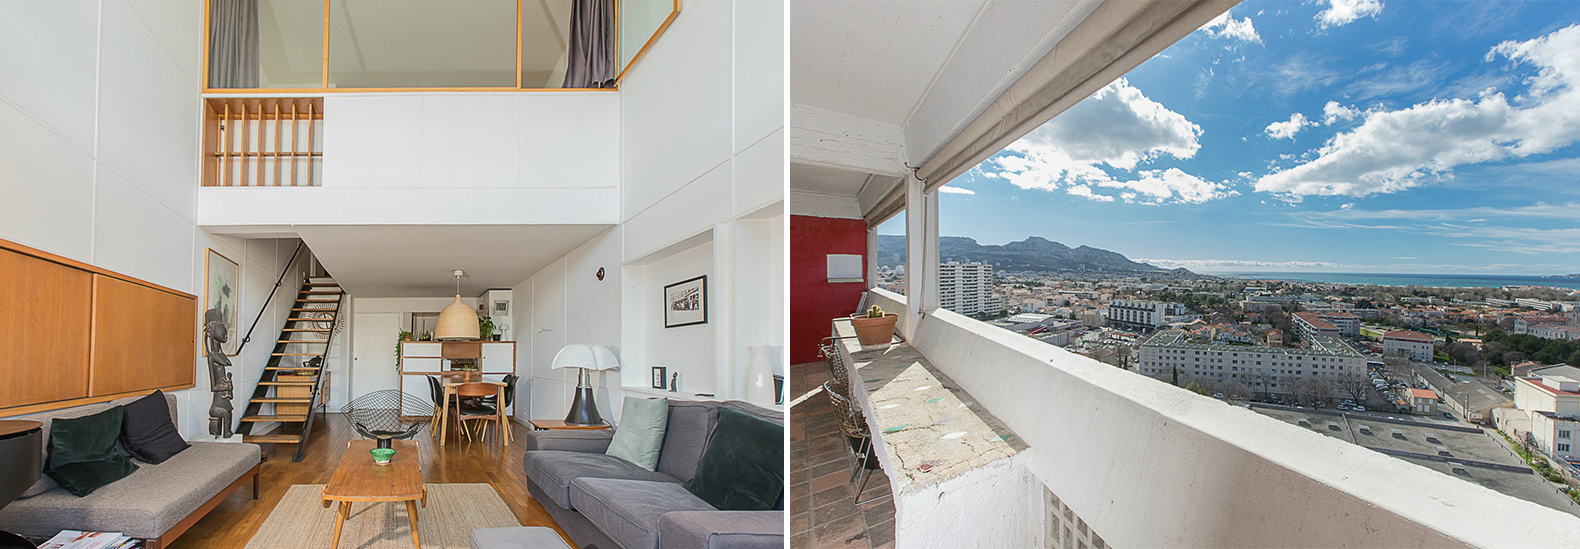 Light Filled Apartment In Le Corbusier S Cité Rause Hits The Market For 741 000